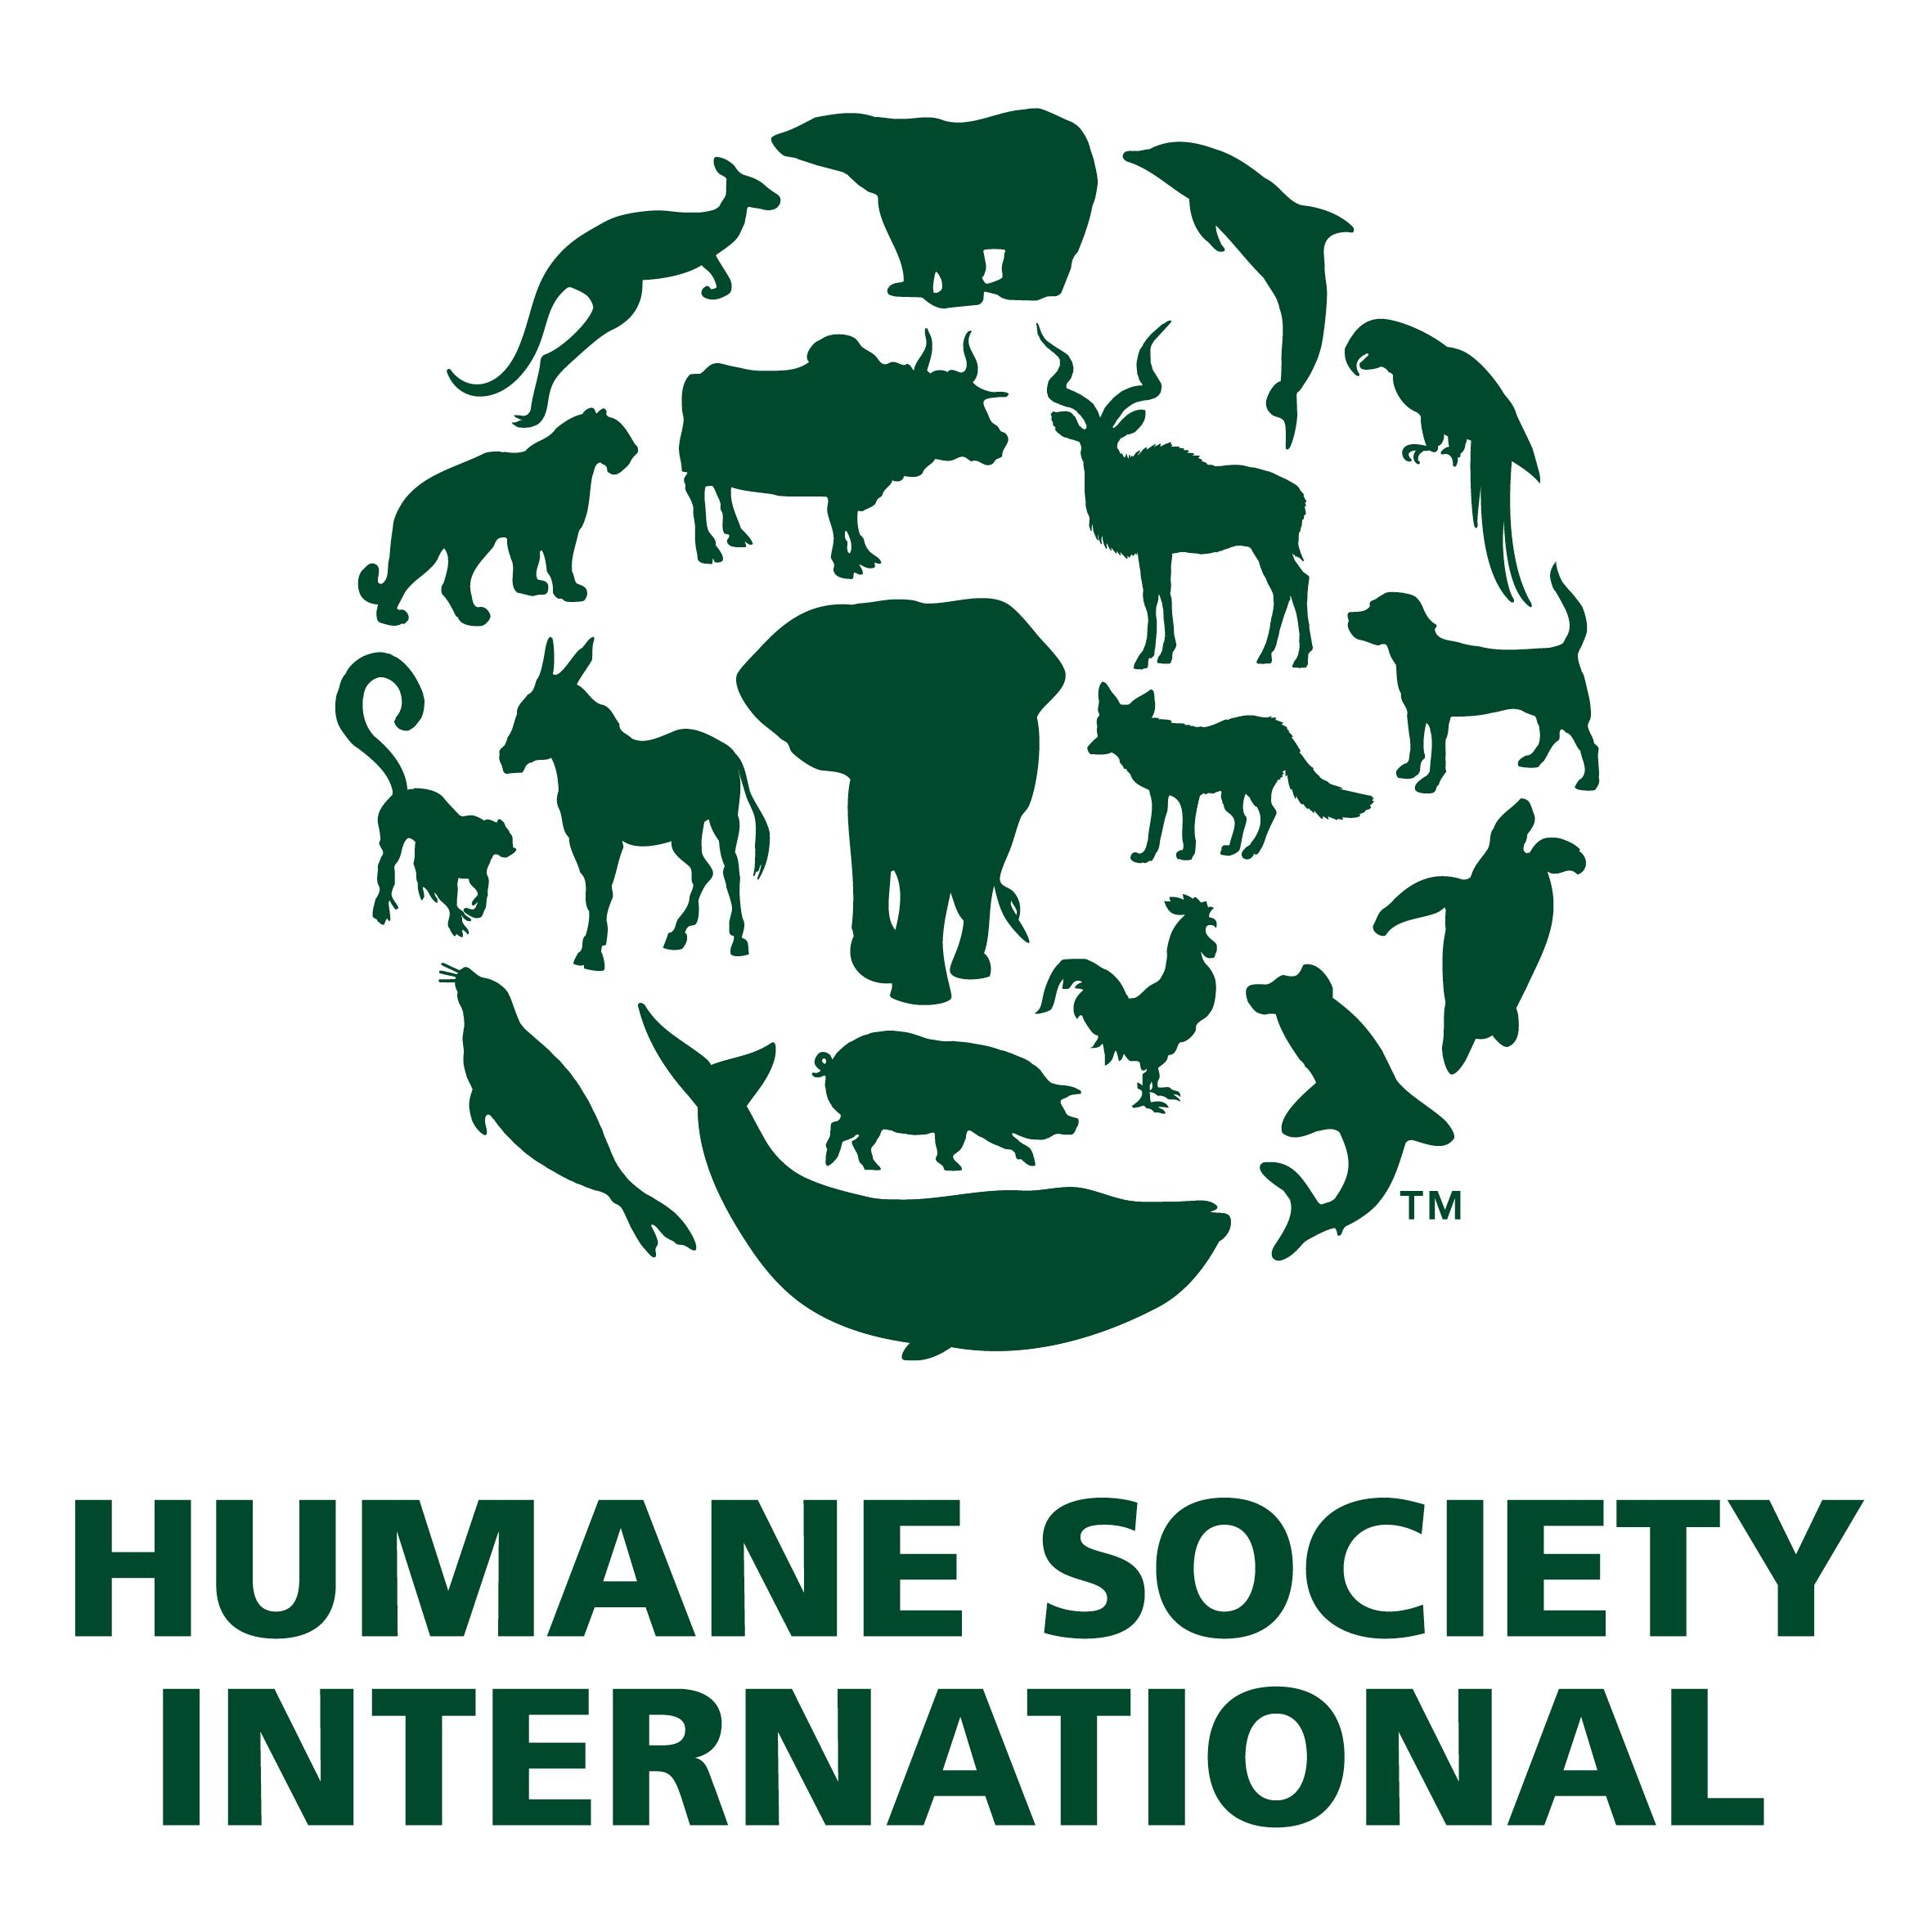 Humane Society International (HSI) logo